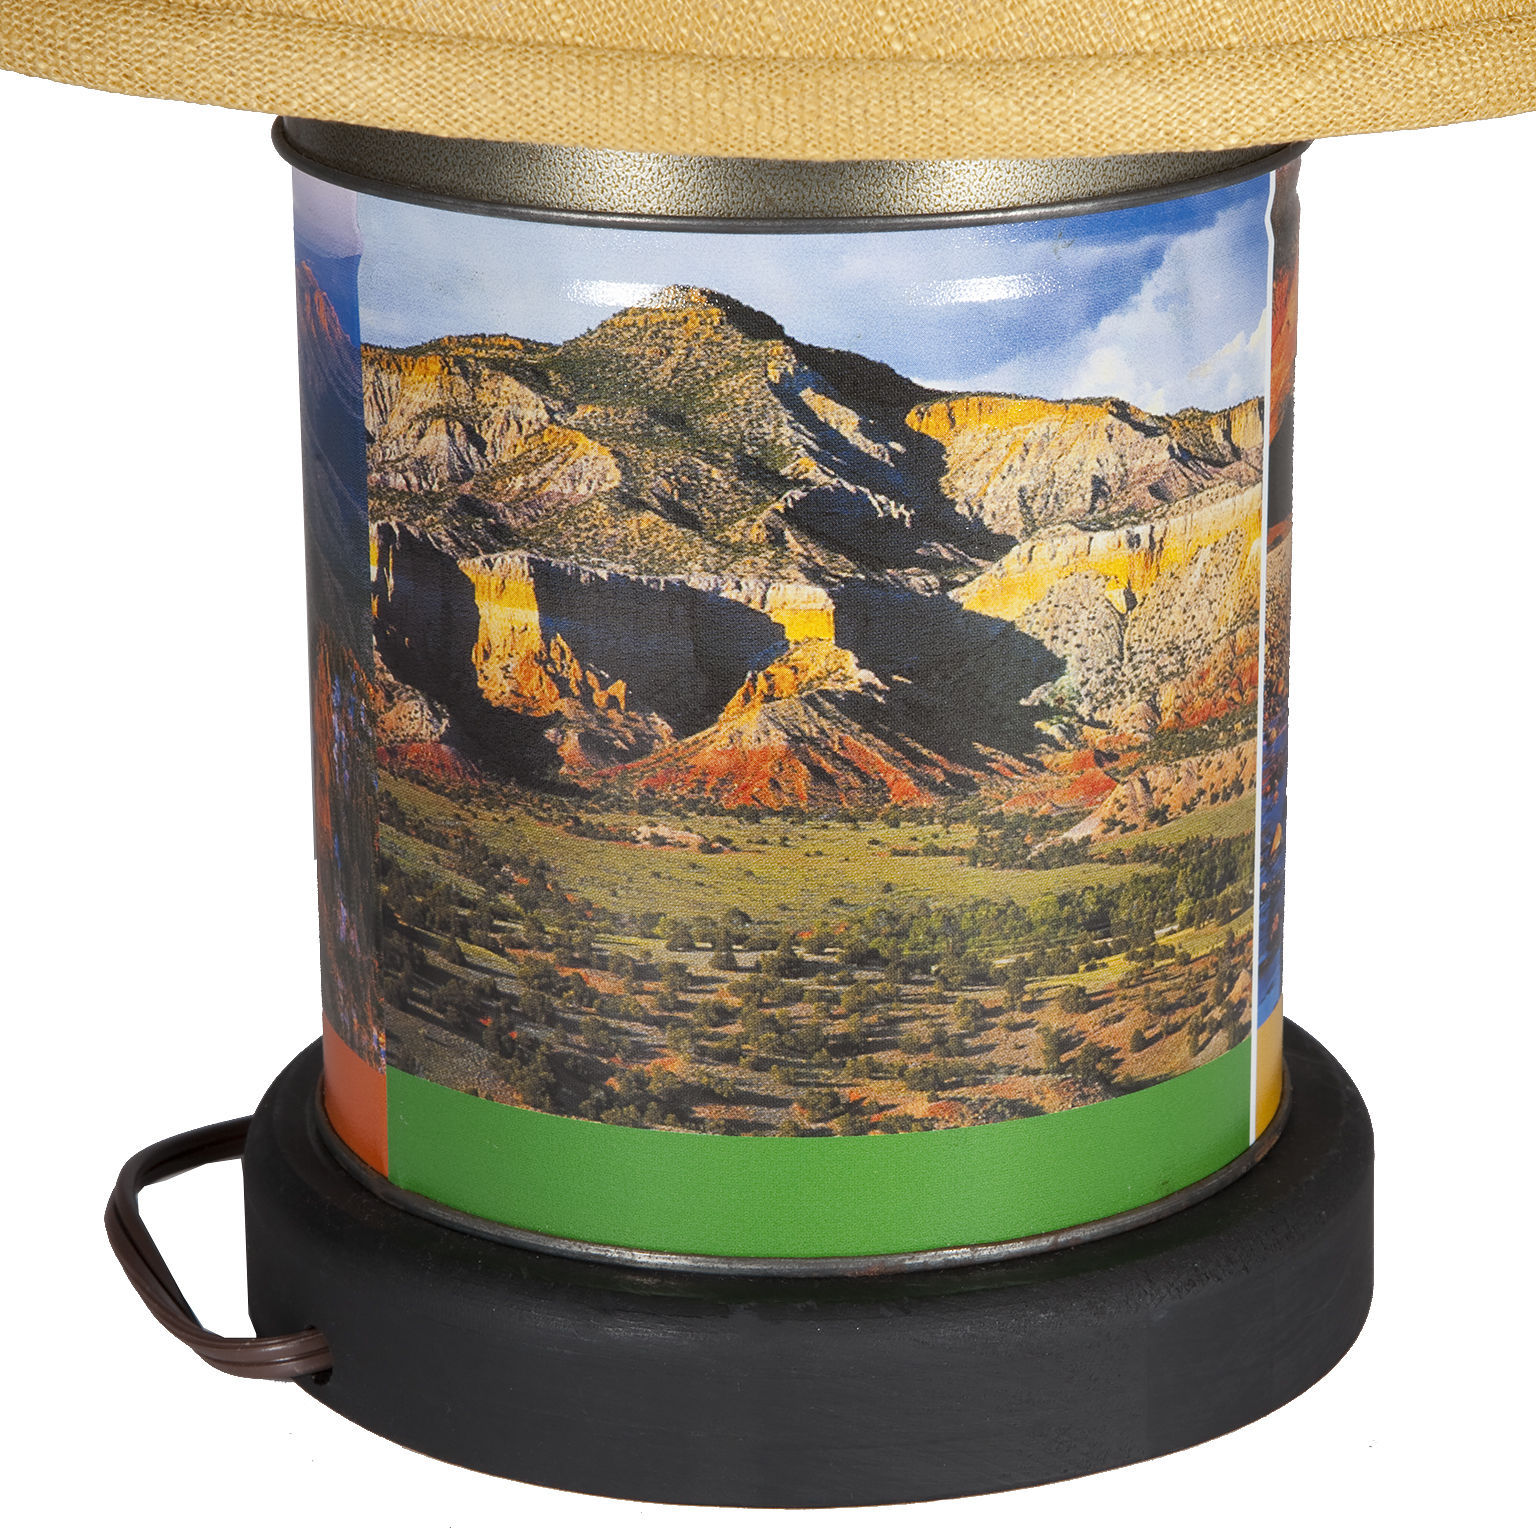 Upcycled Vintage Landscape Metal Caddy Lamp with New Yellow Fabric Shade